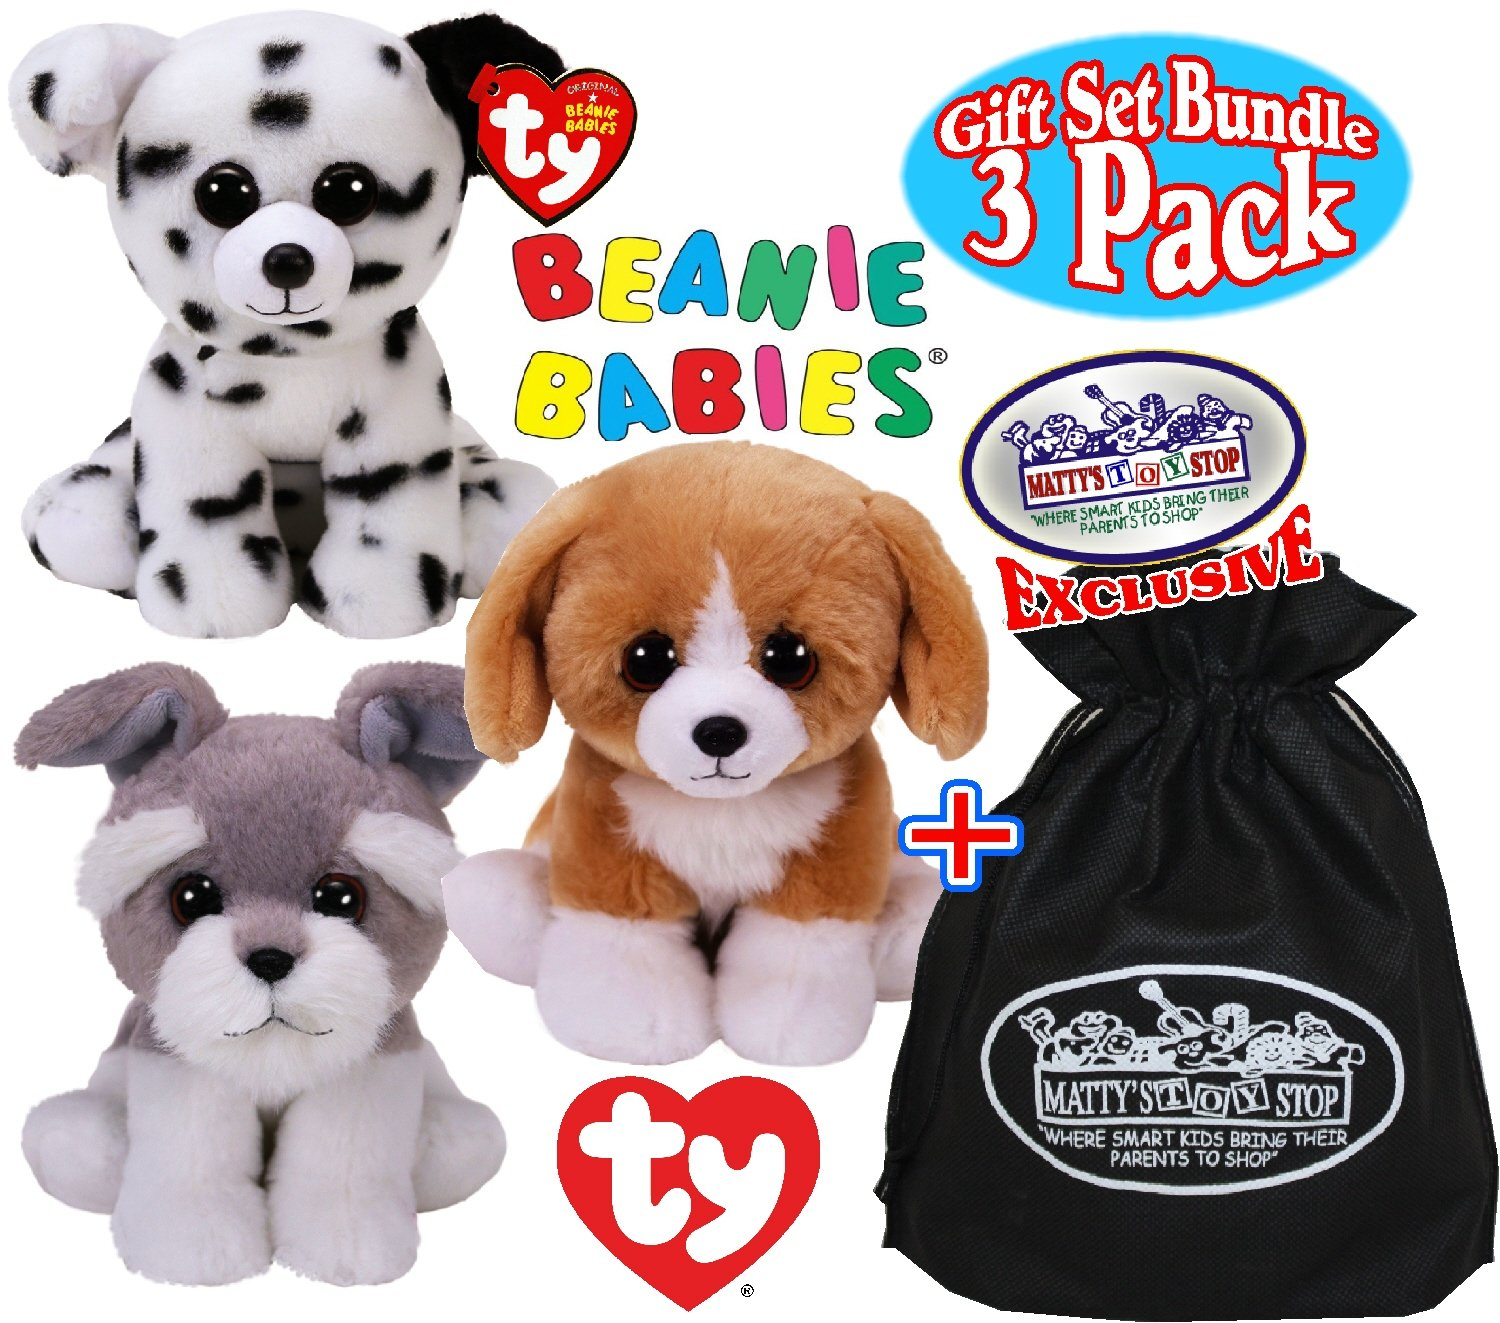 Highest Priced Beanie Babies - Parchment N Lead b289978532e